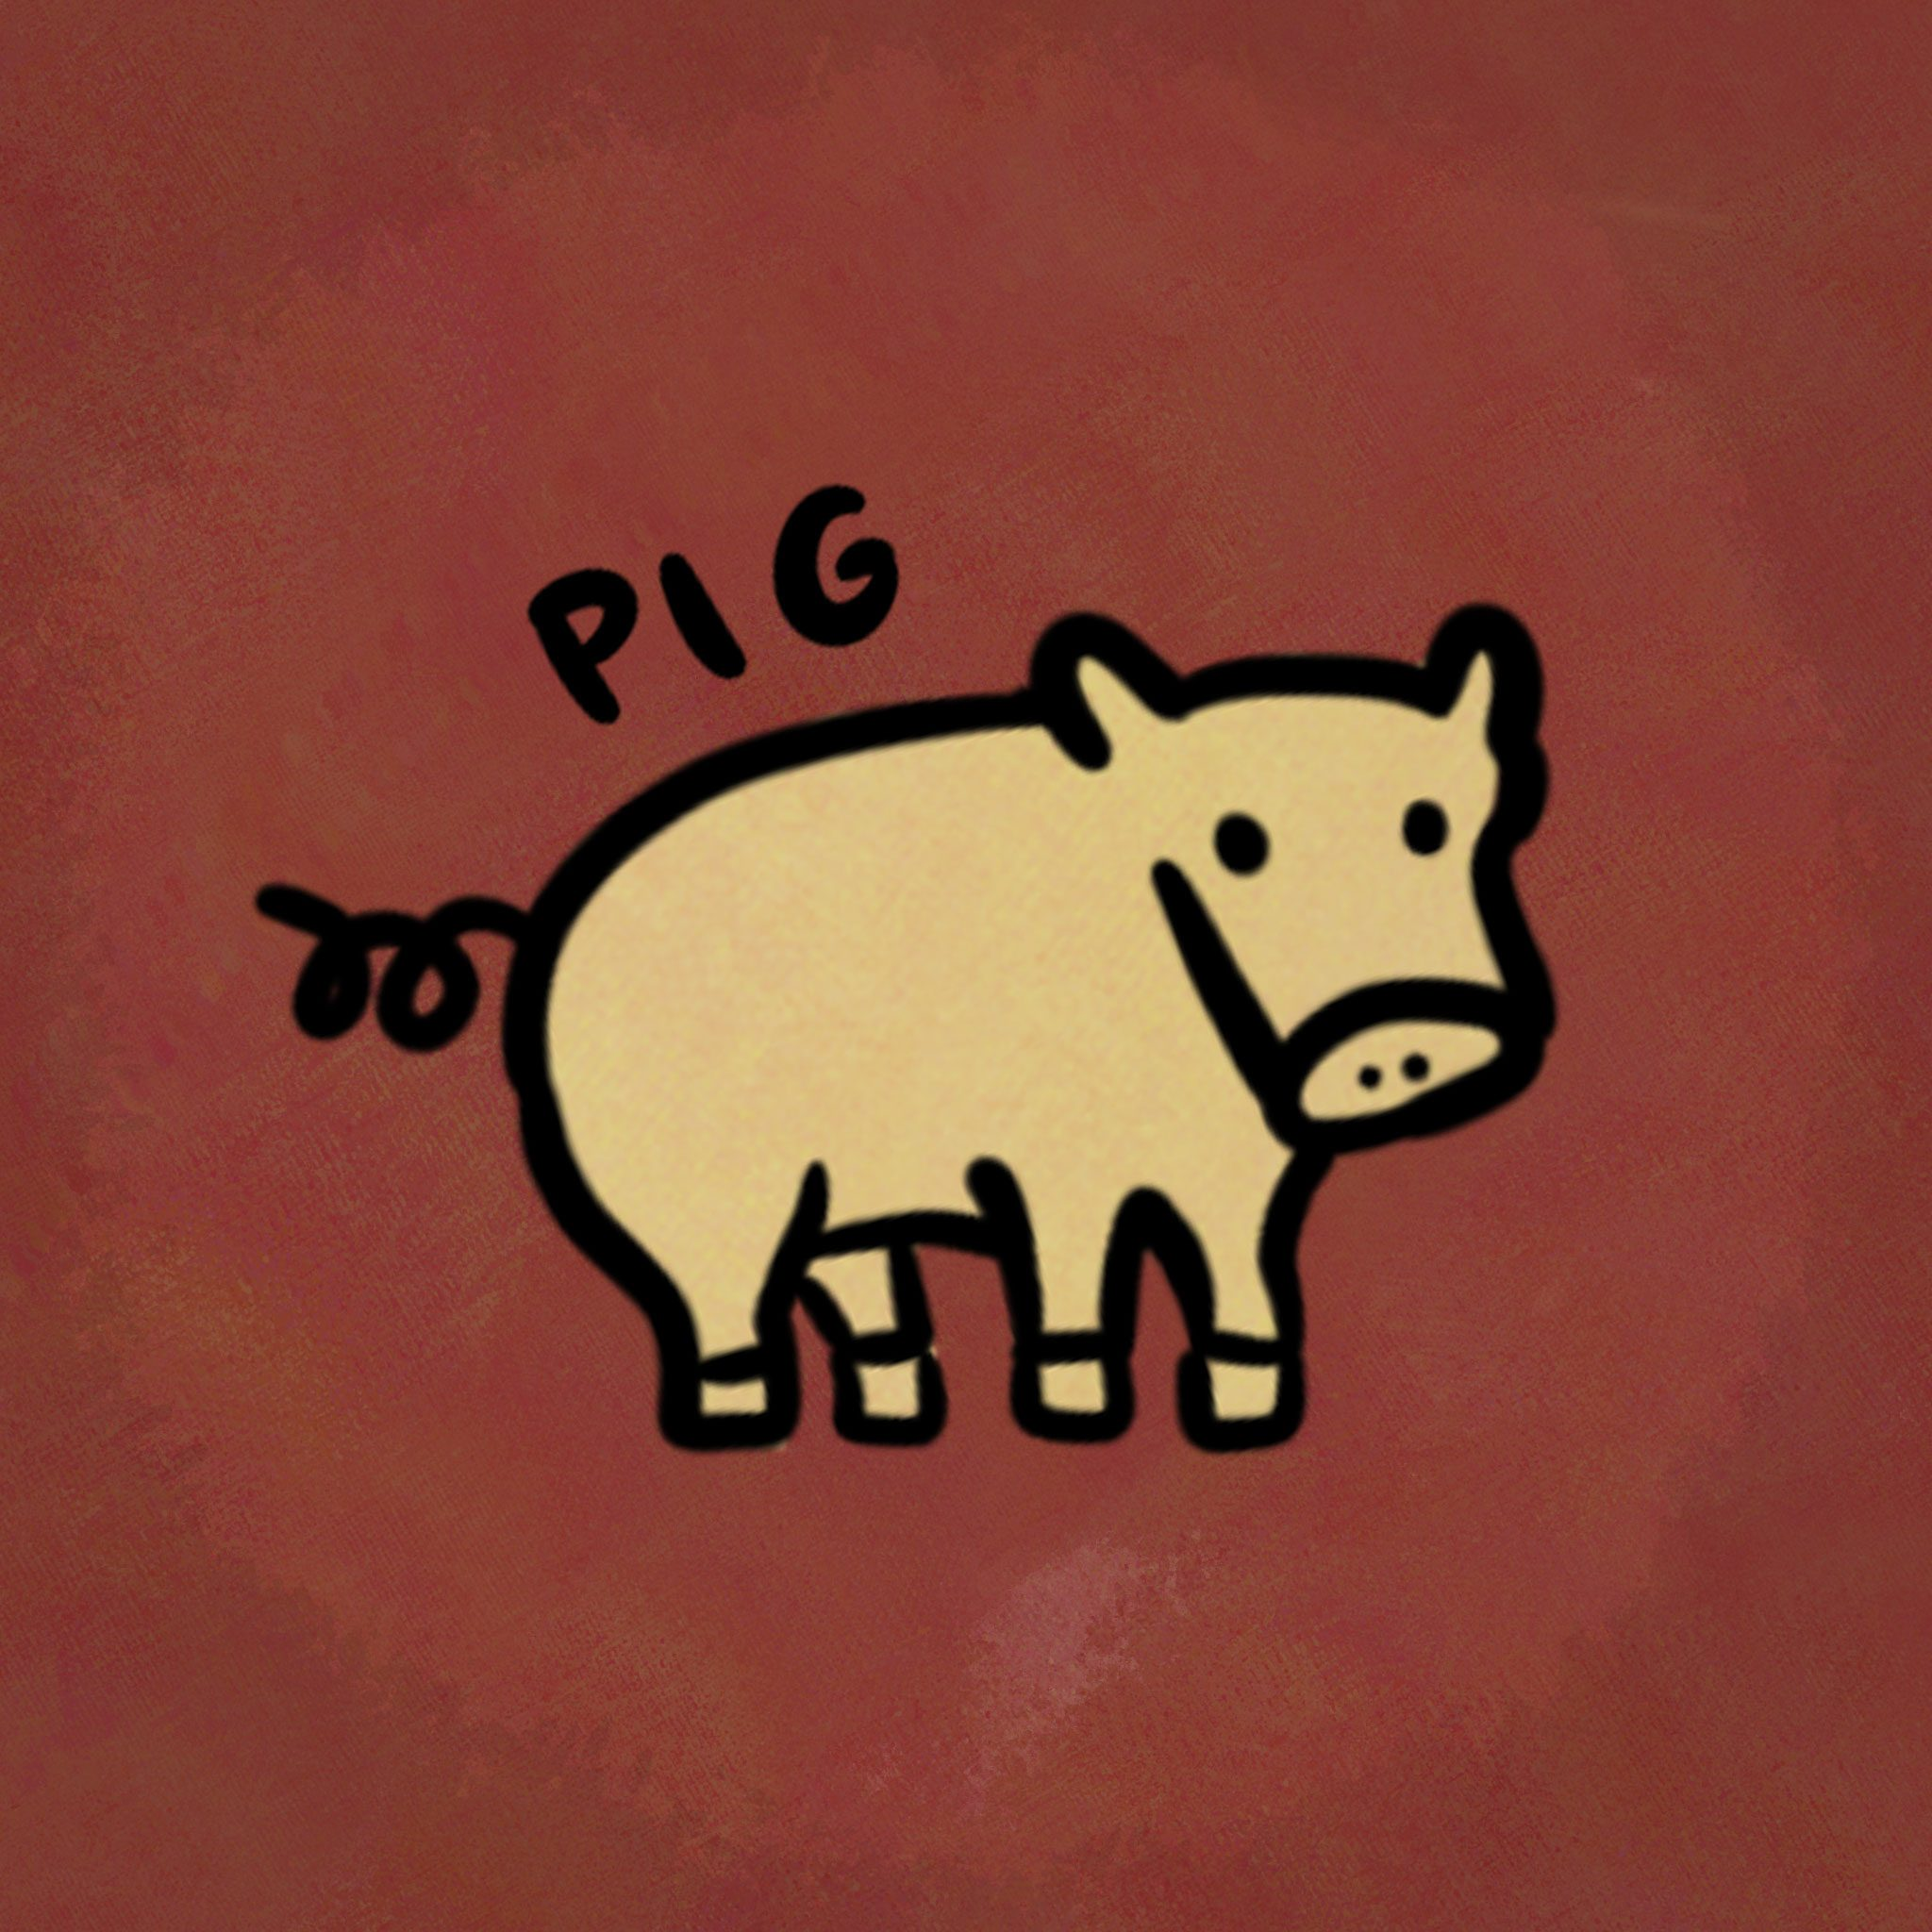 Illustration of animal from the chinese zodiac: Pig